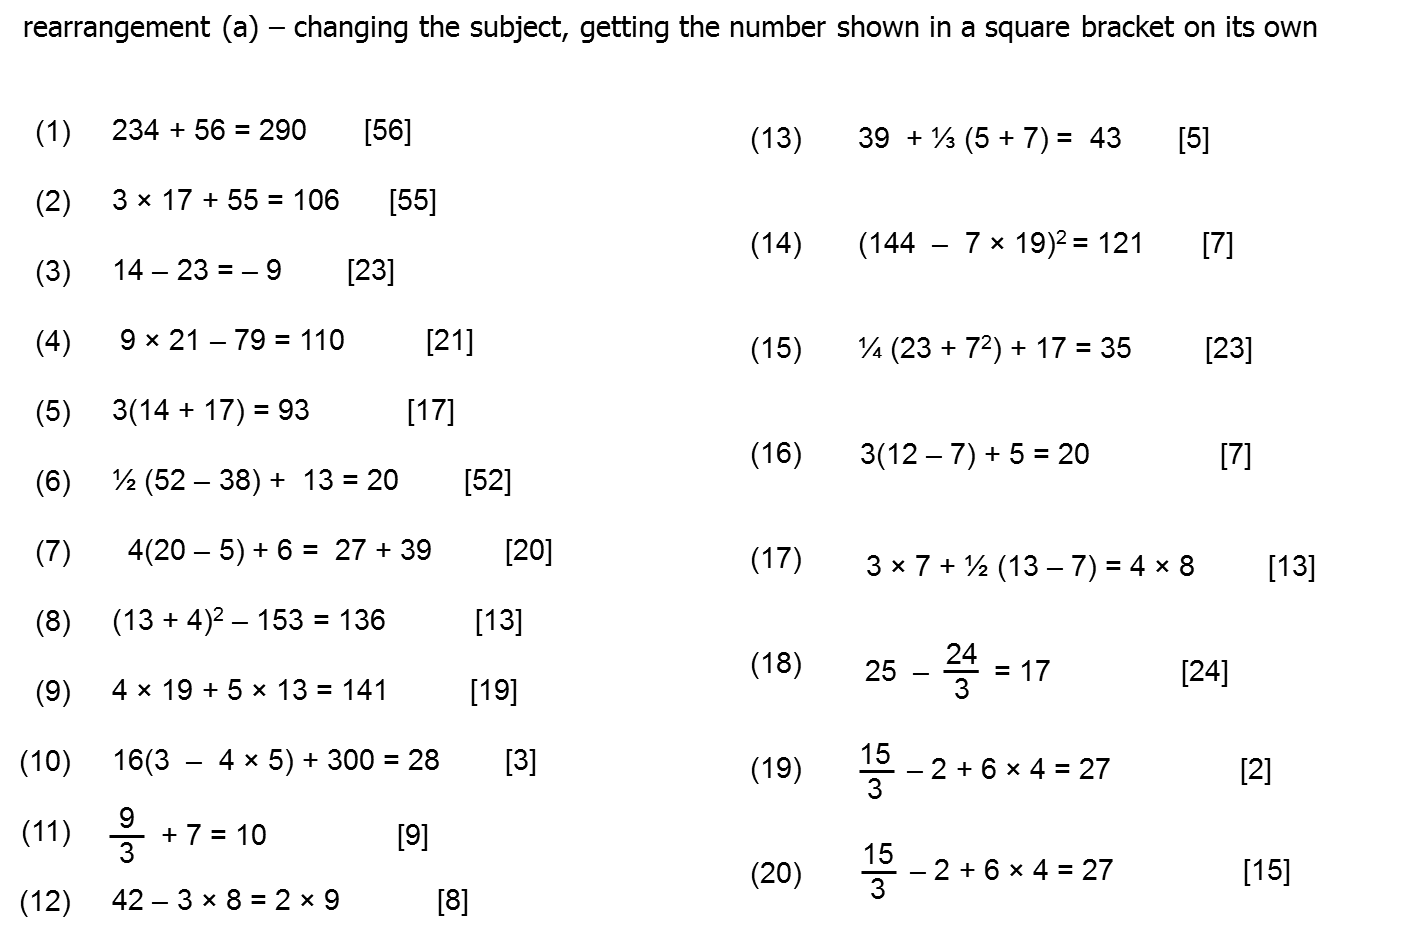 worksheet Rearranging question of the week 4 rearranging formula mr barton maths blog i would hope that if formulae was introduced this way then perhaps not as many students have misconceptions r